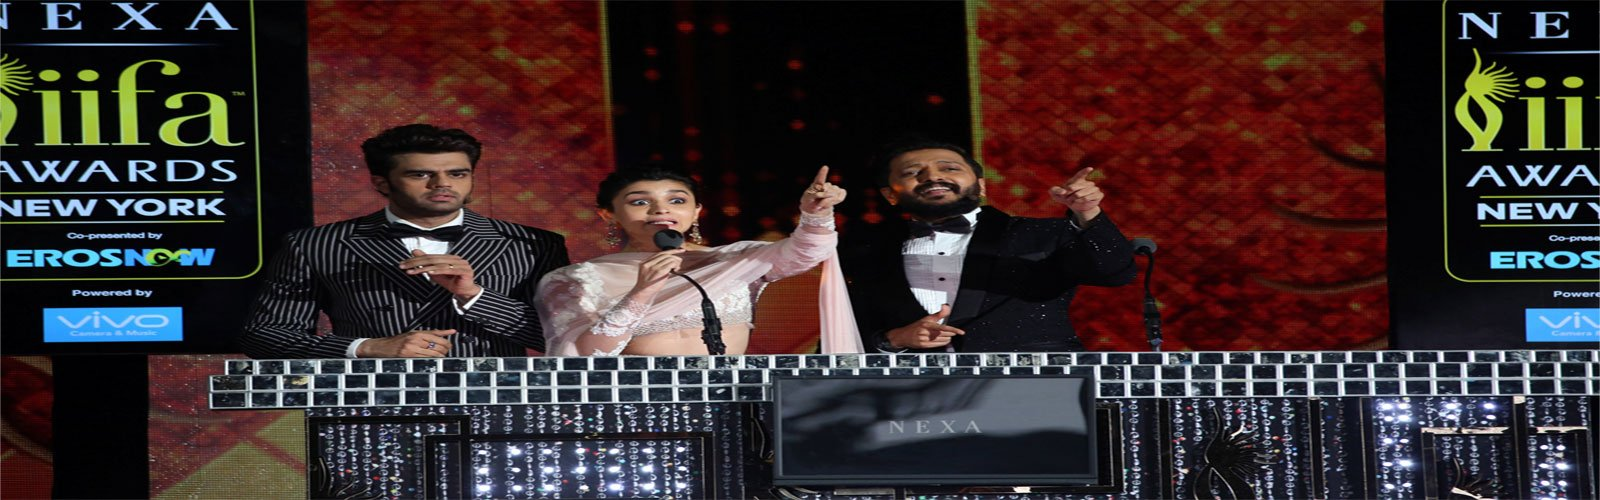 IIFA, Oscars of Bollywood, in pictures